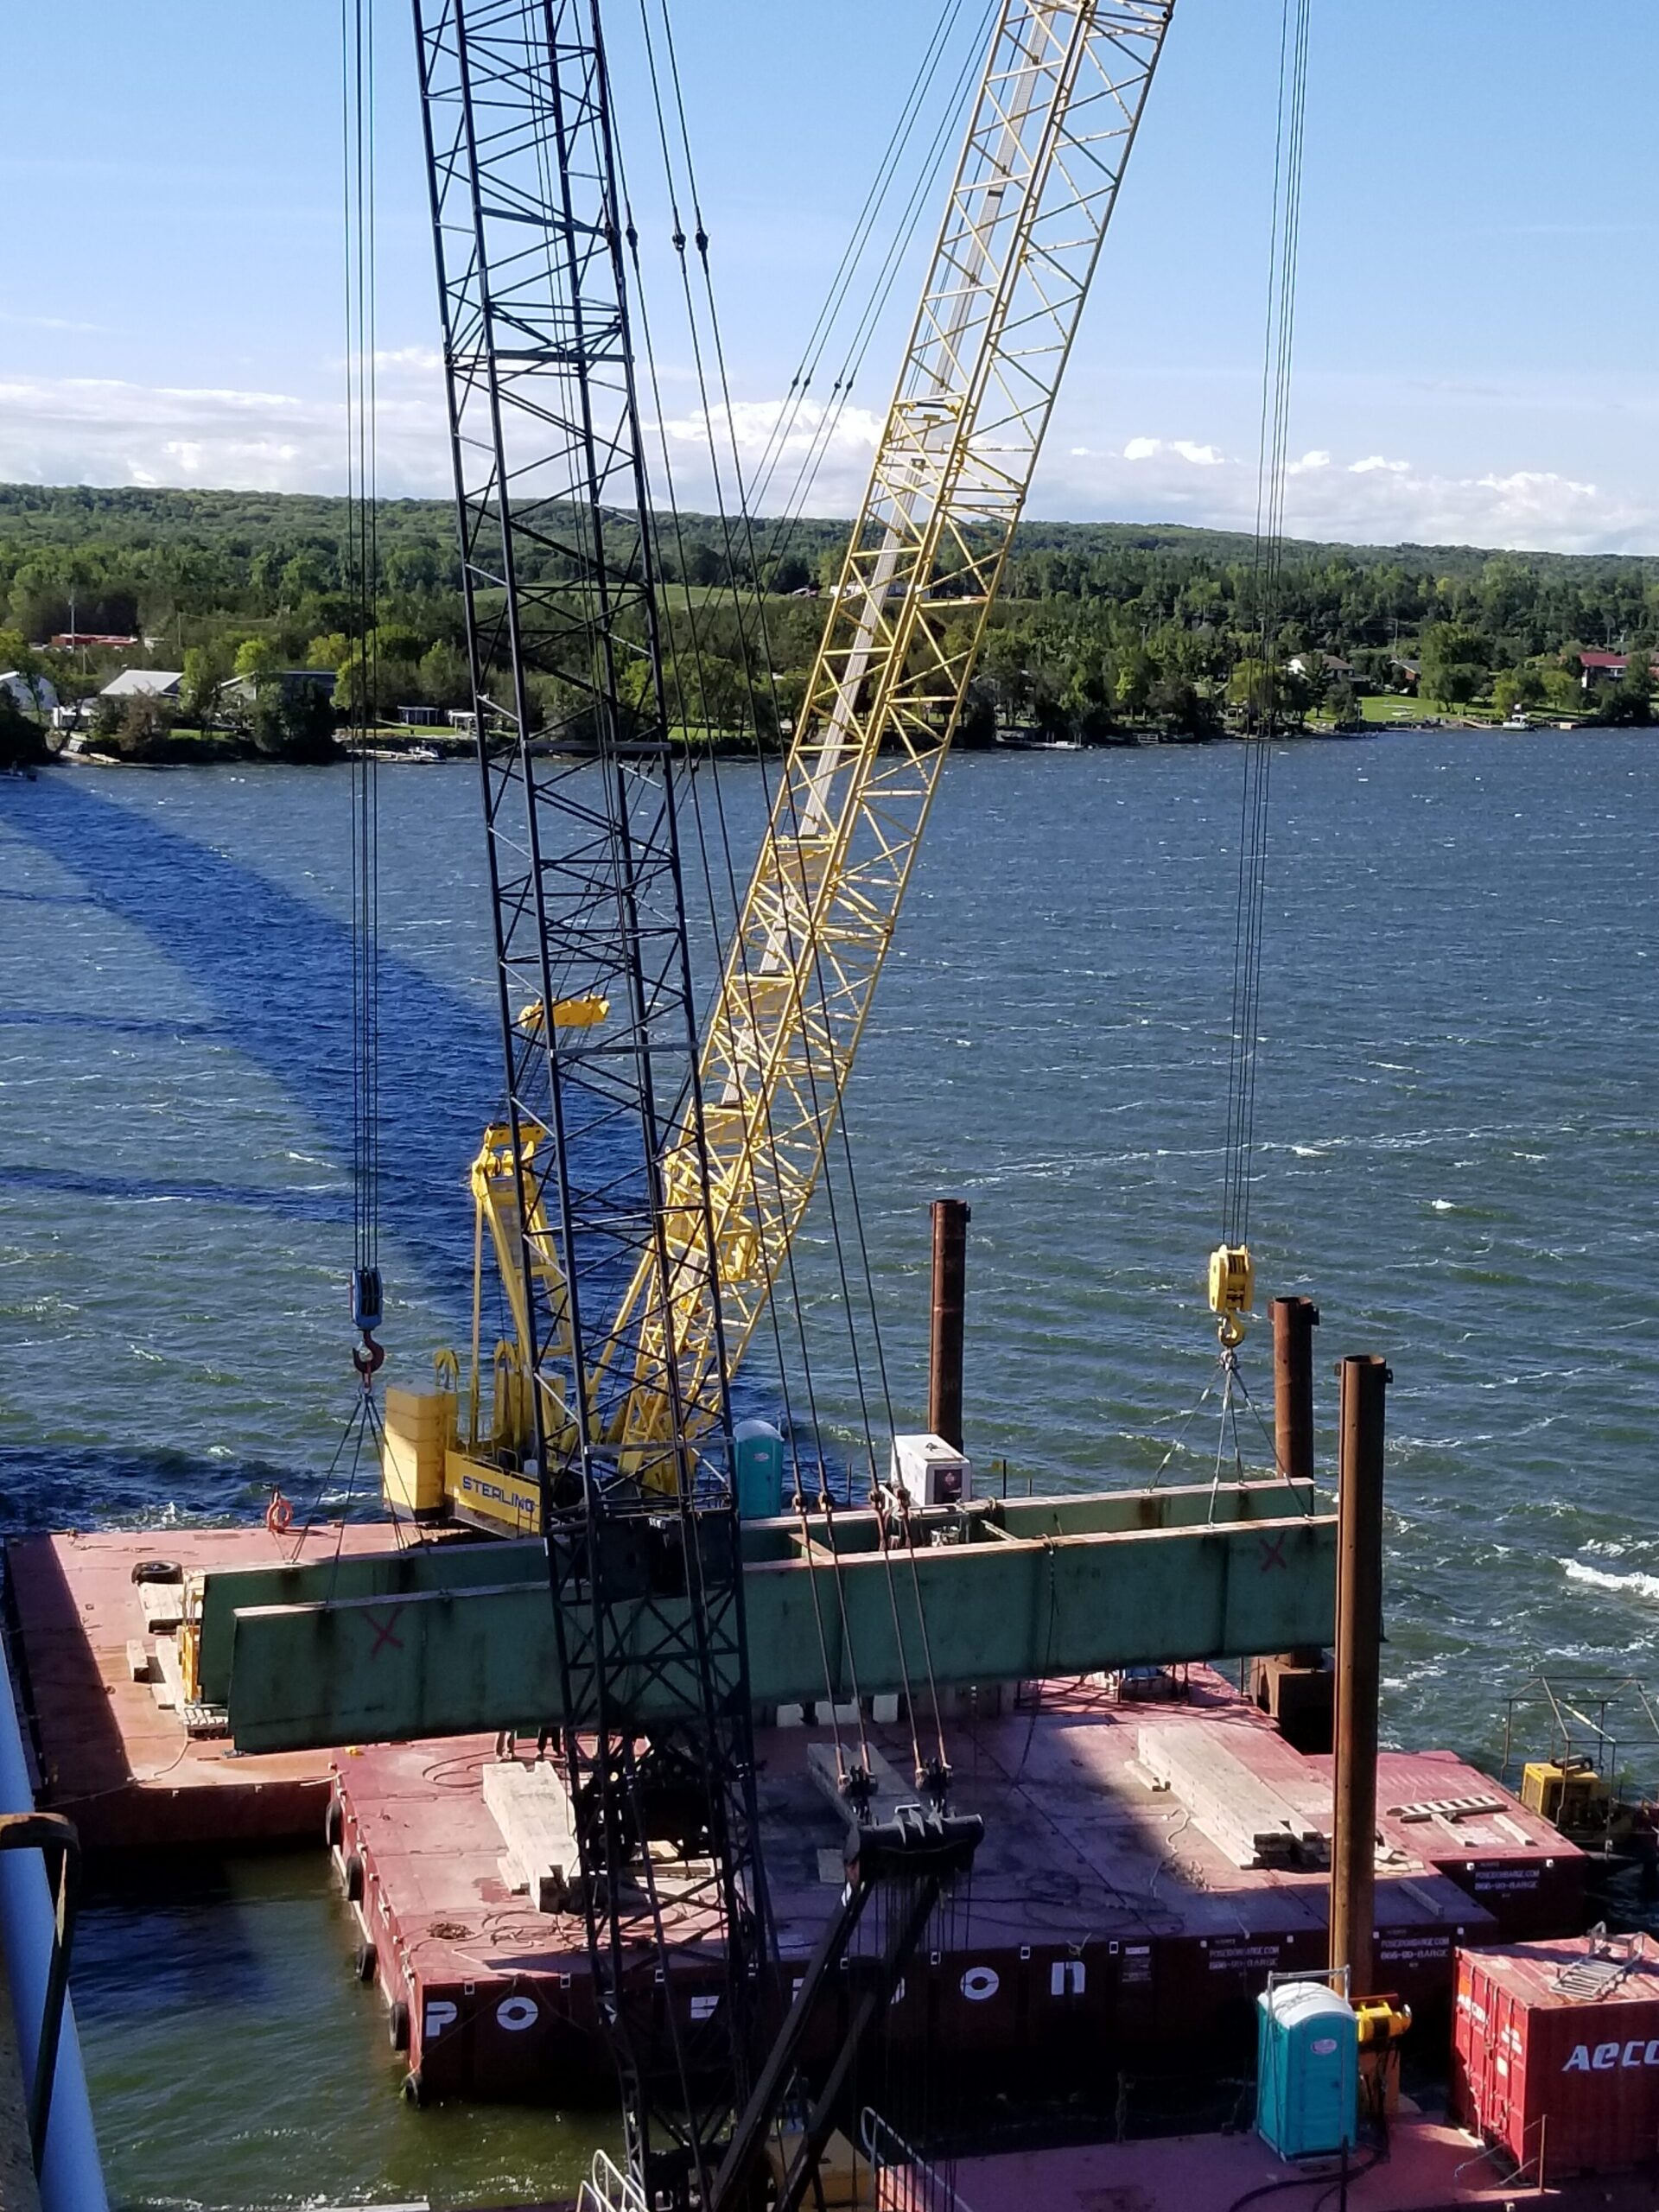 Lowering the second haunch girder onto the barge